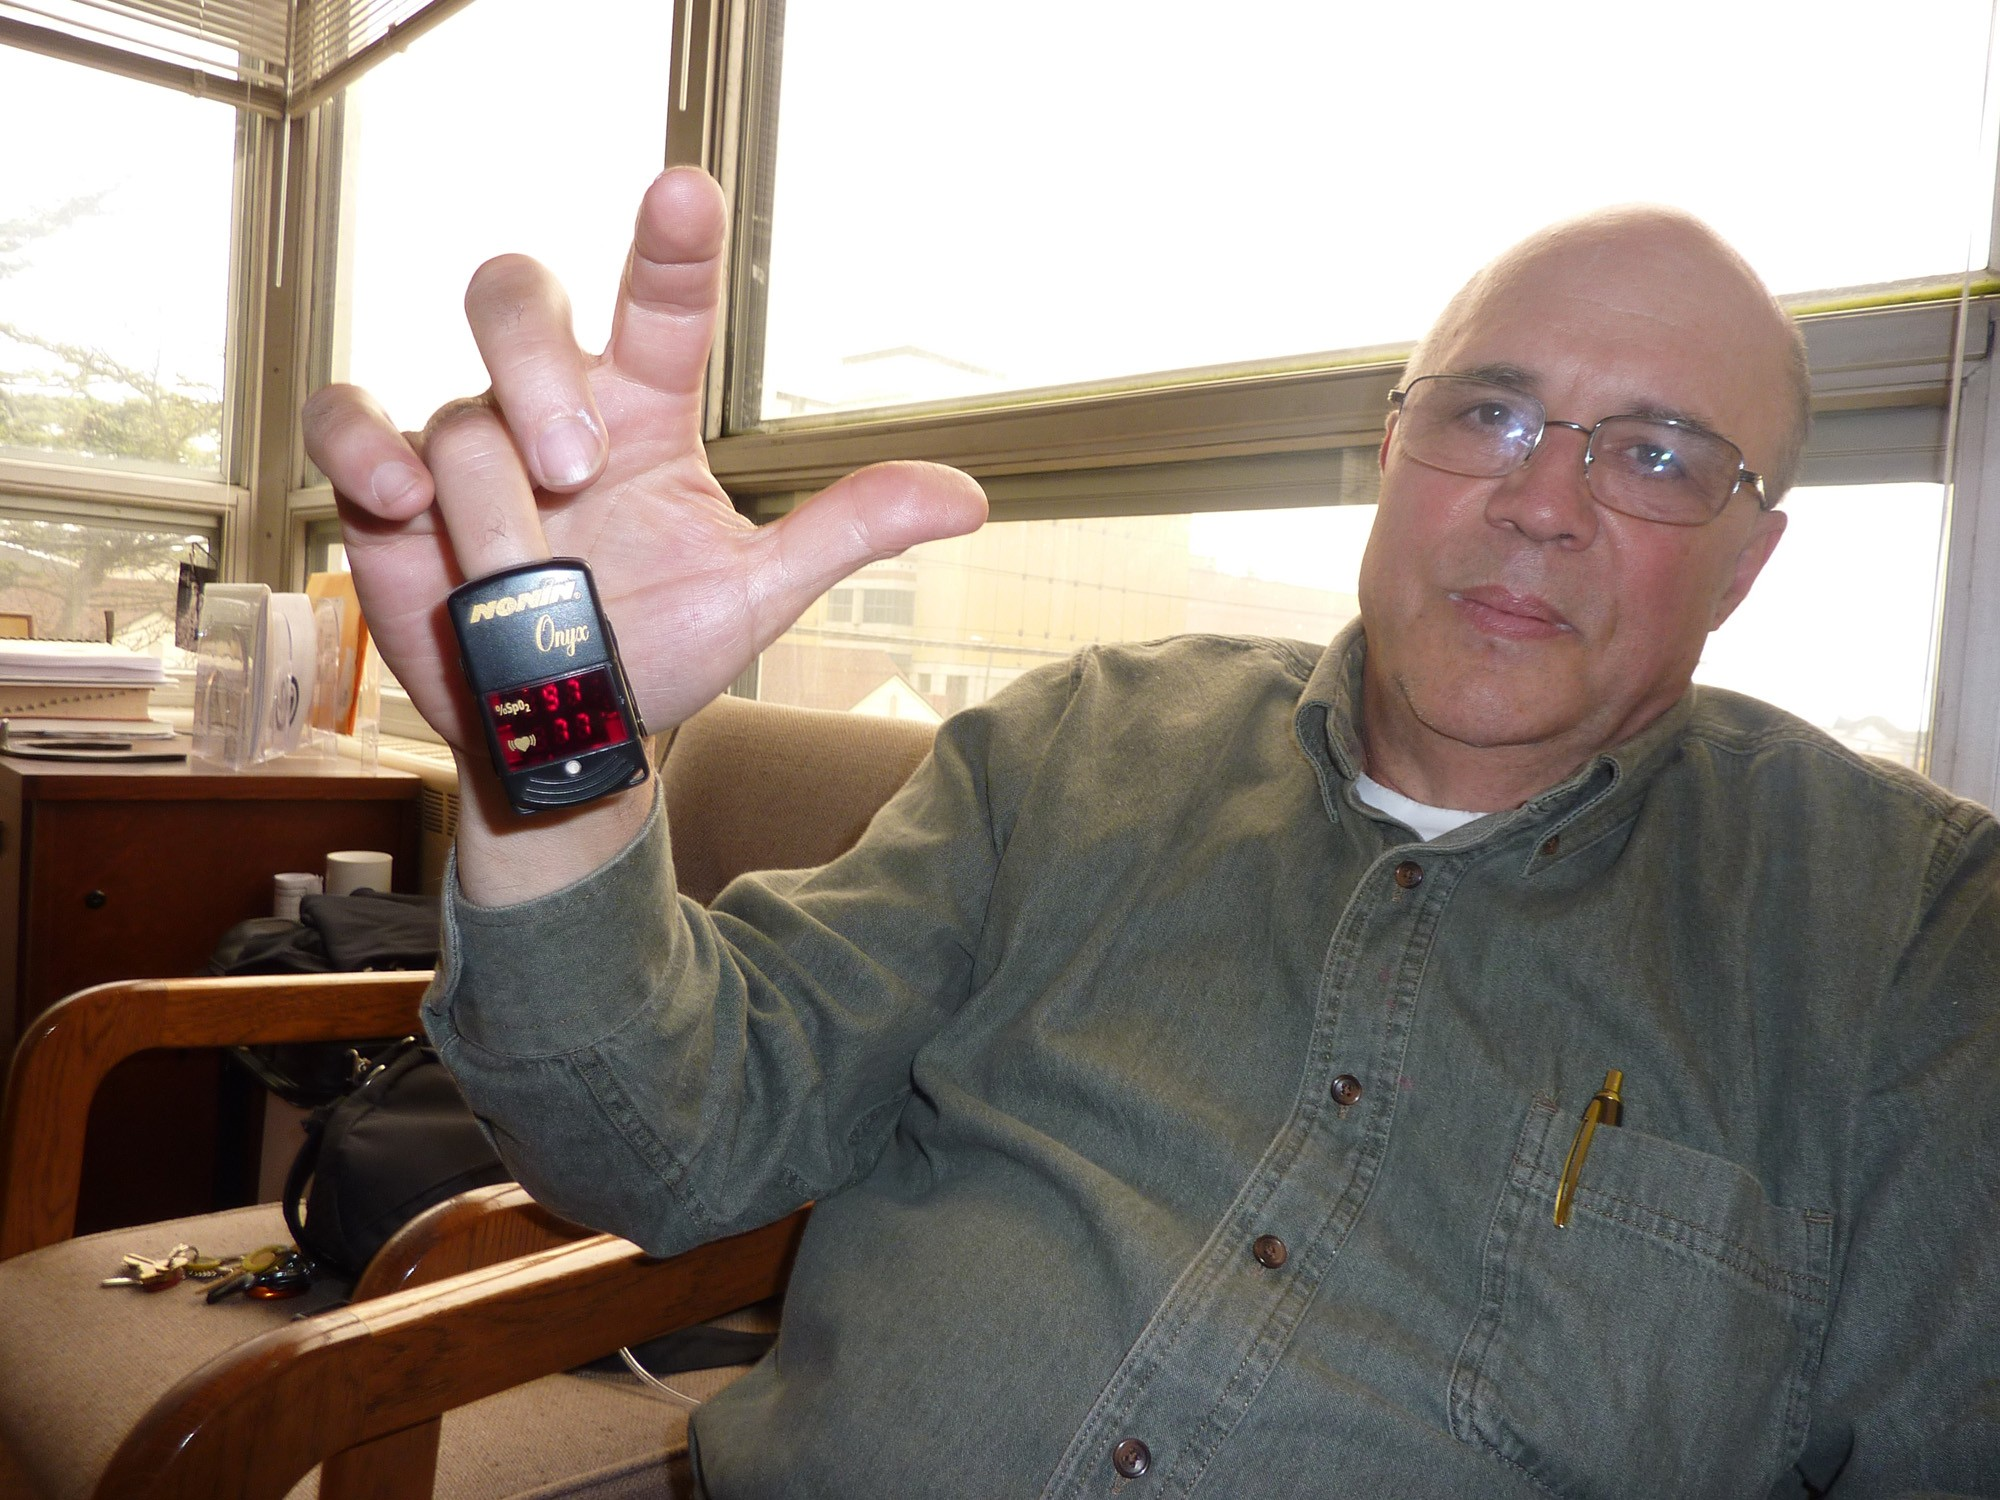 Lance Madsen displays his oximeter, which measures his pulse and blood oxygen. - PHOTO BY RYAN BURNS